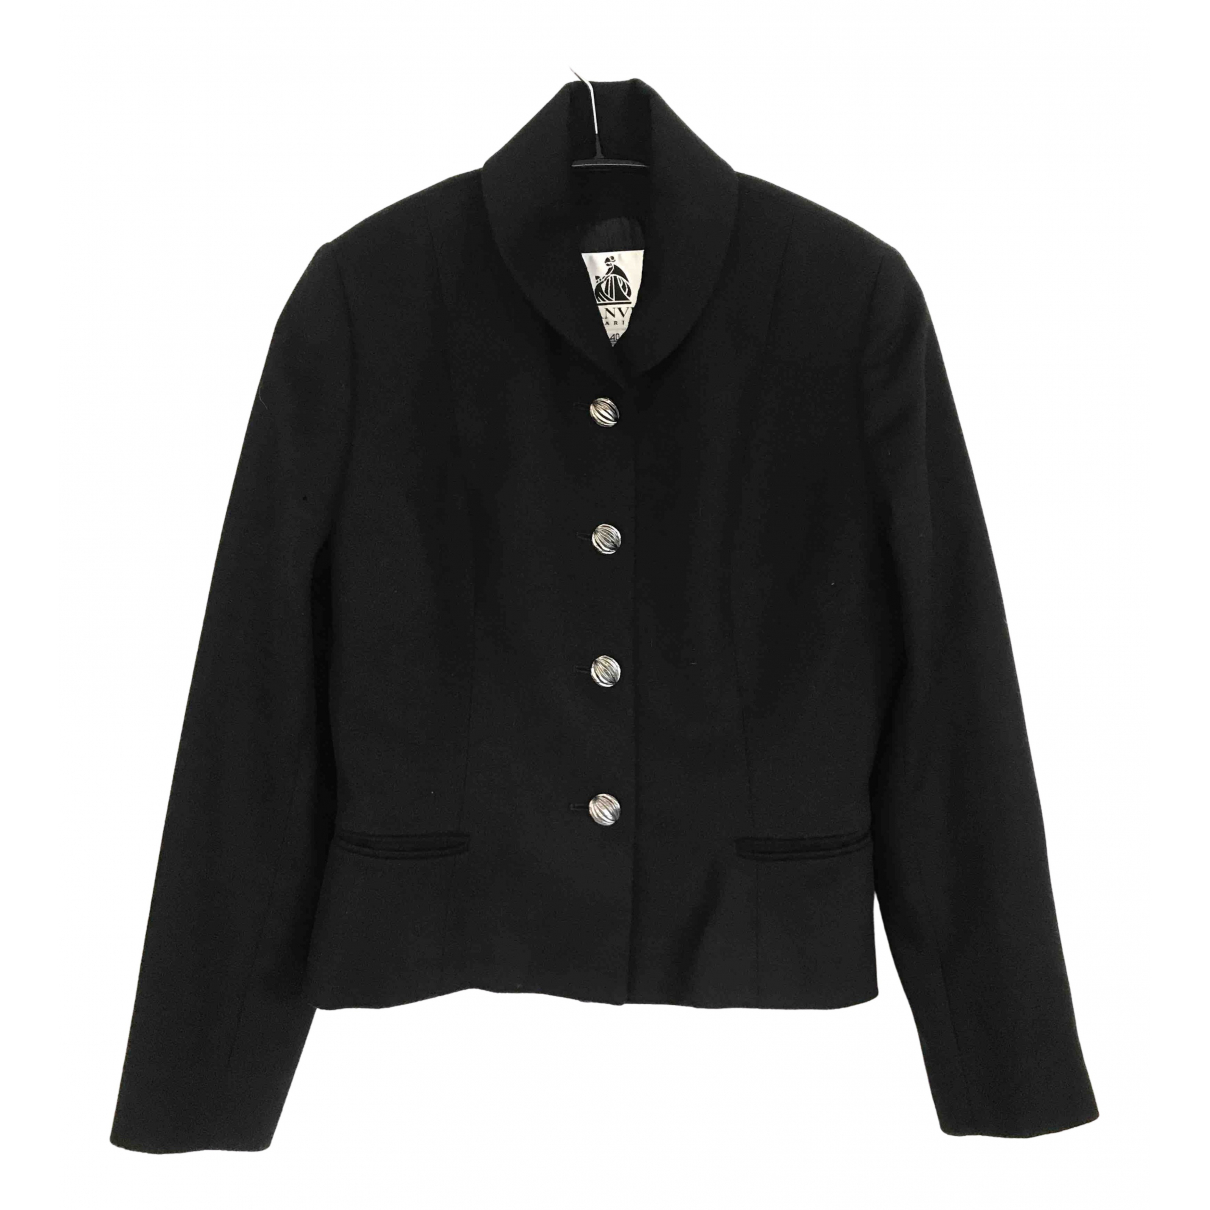 Lanvin N Black Wool jacket for Women 40 FR